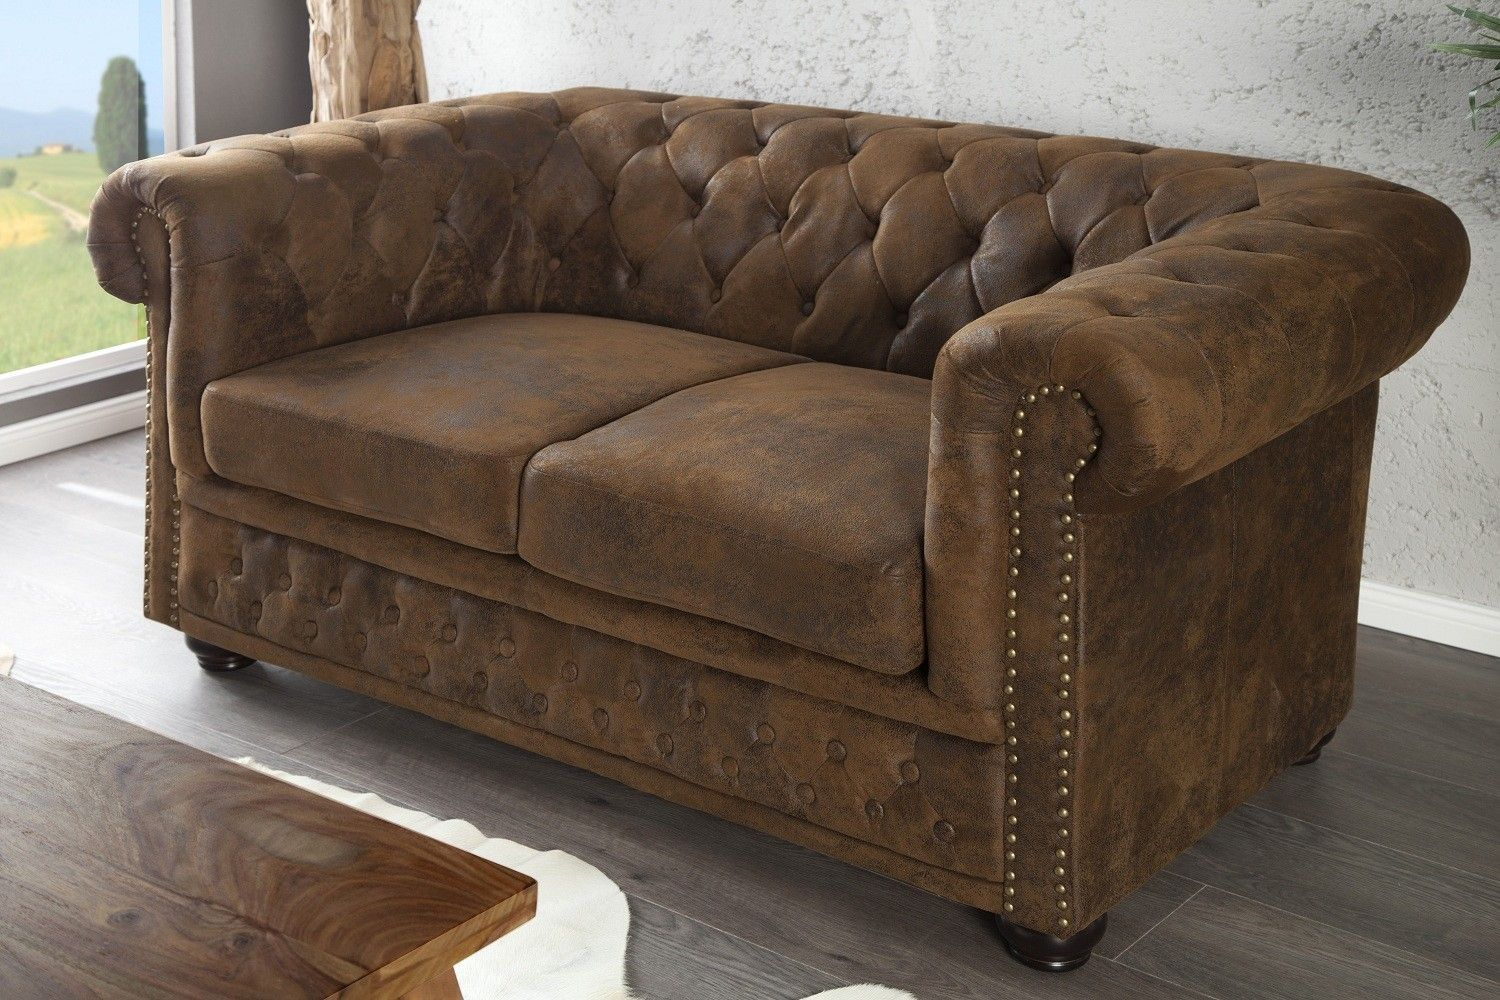 Pin By Amelin D A On Chesterfild Pinterest Canapes And Chesterfield